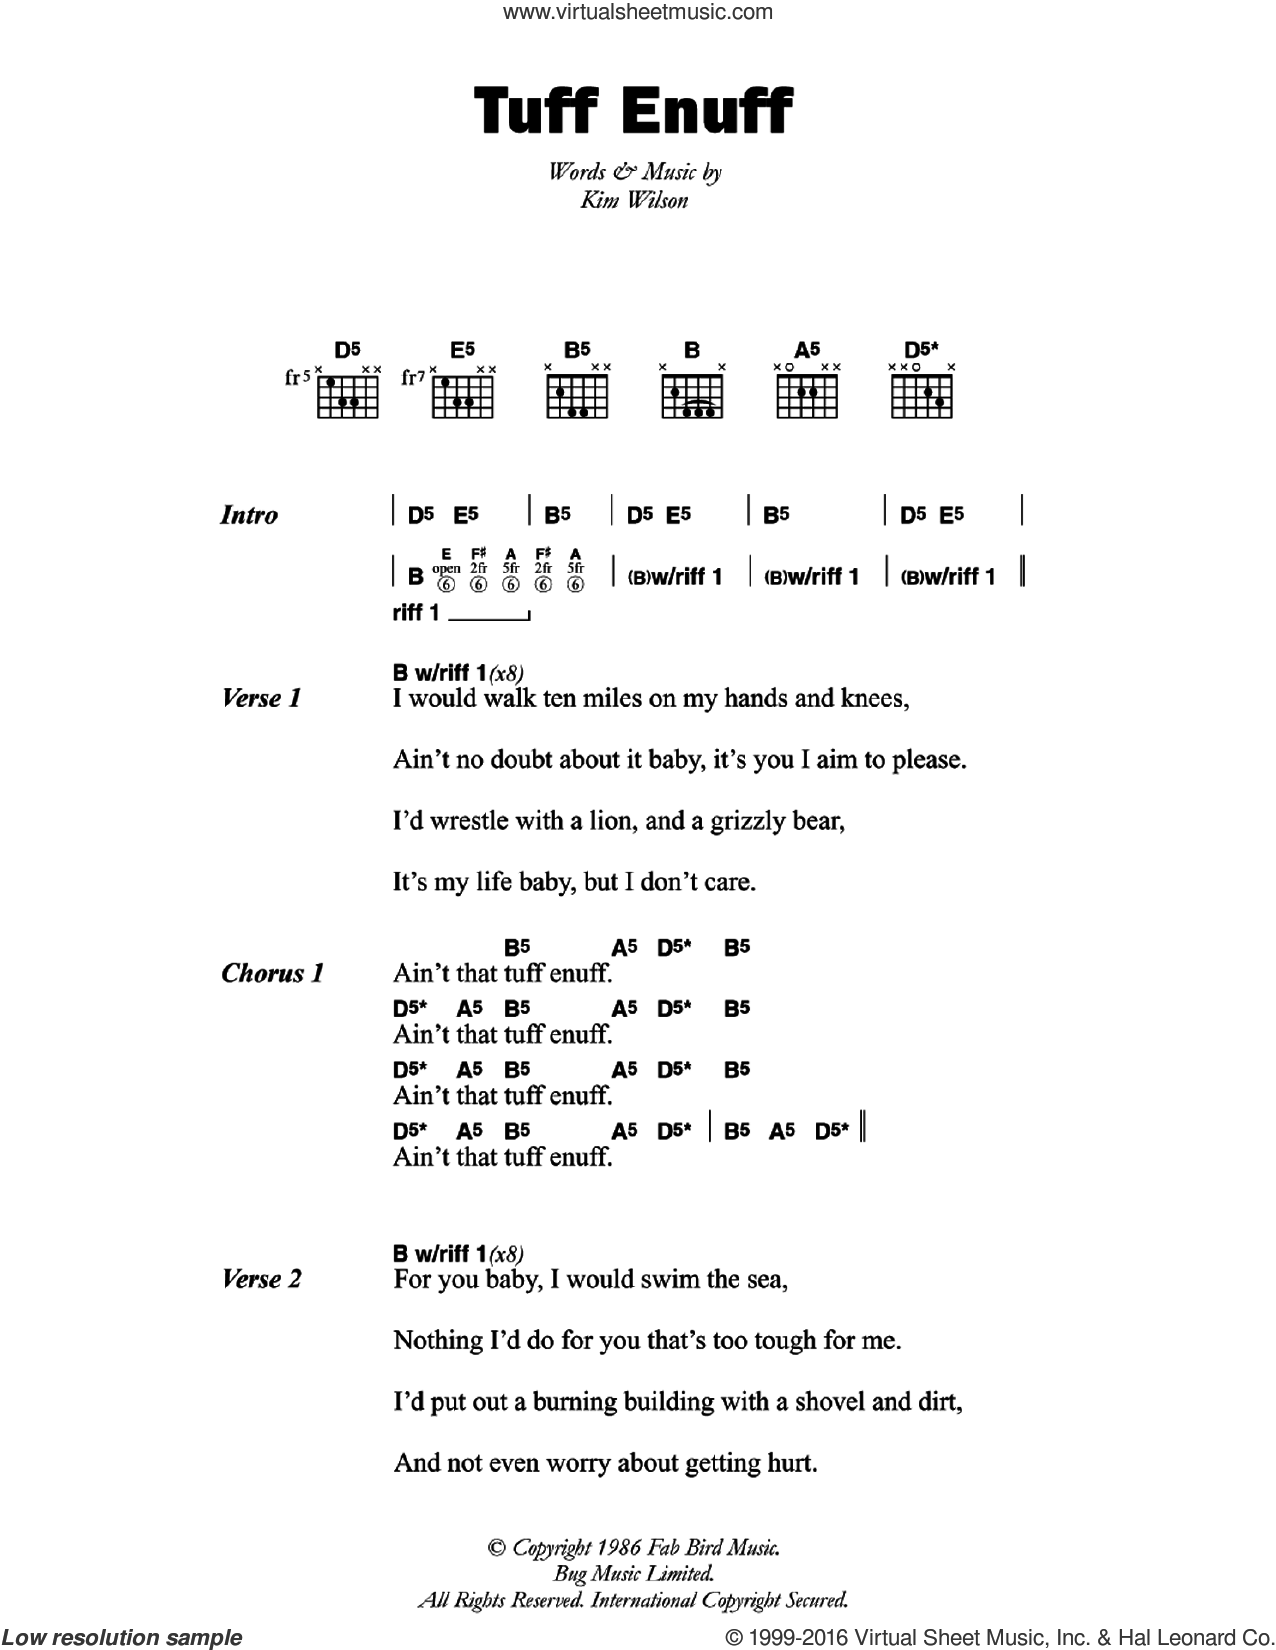 Tuff Enuff sheet music for guitar (chords) by The Fabulous Thunderbirds and Kim Wilson, intermediate skill level